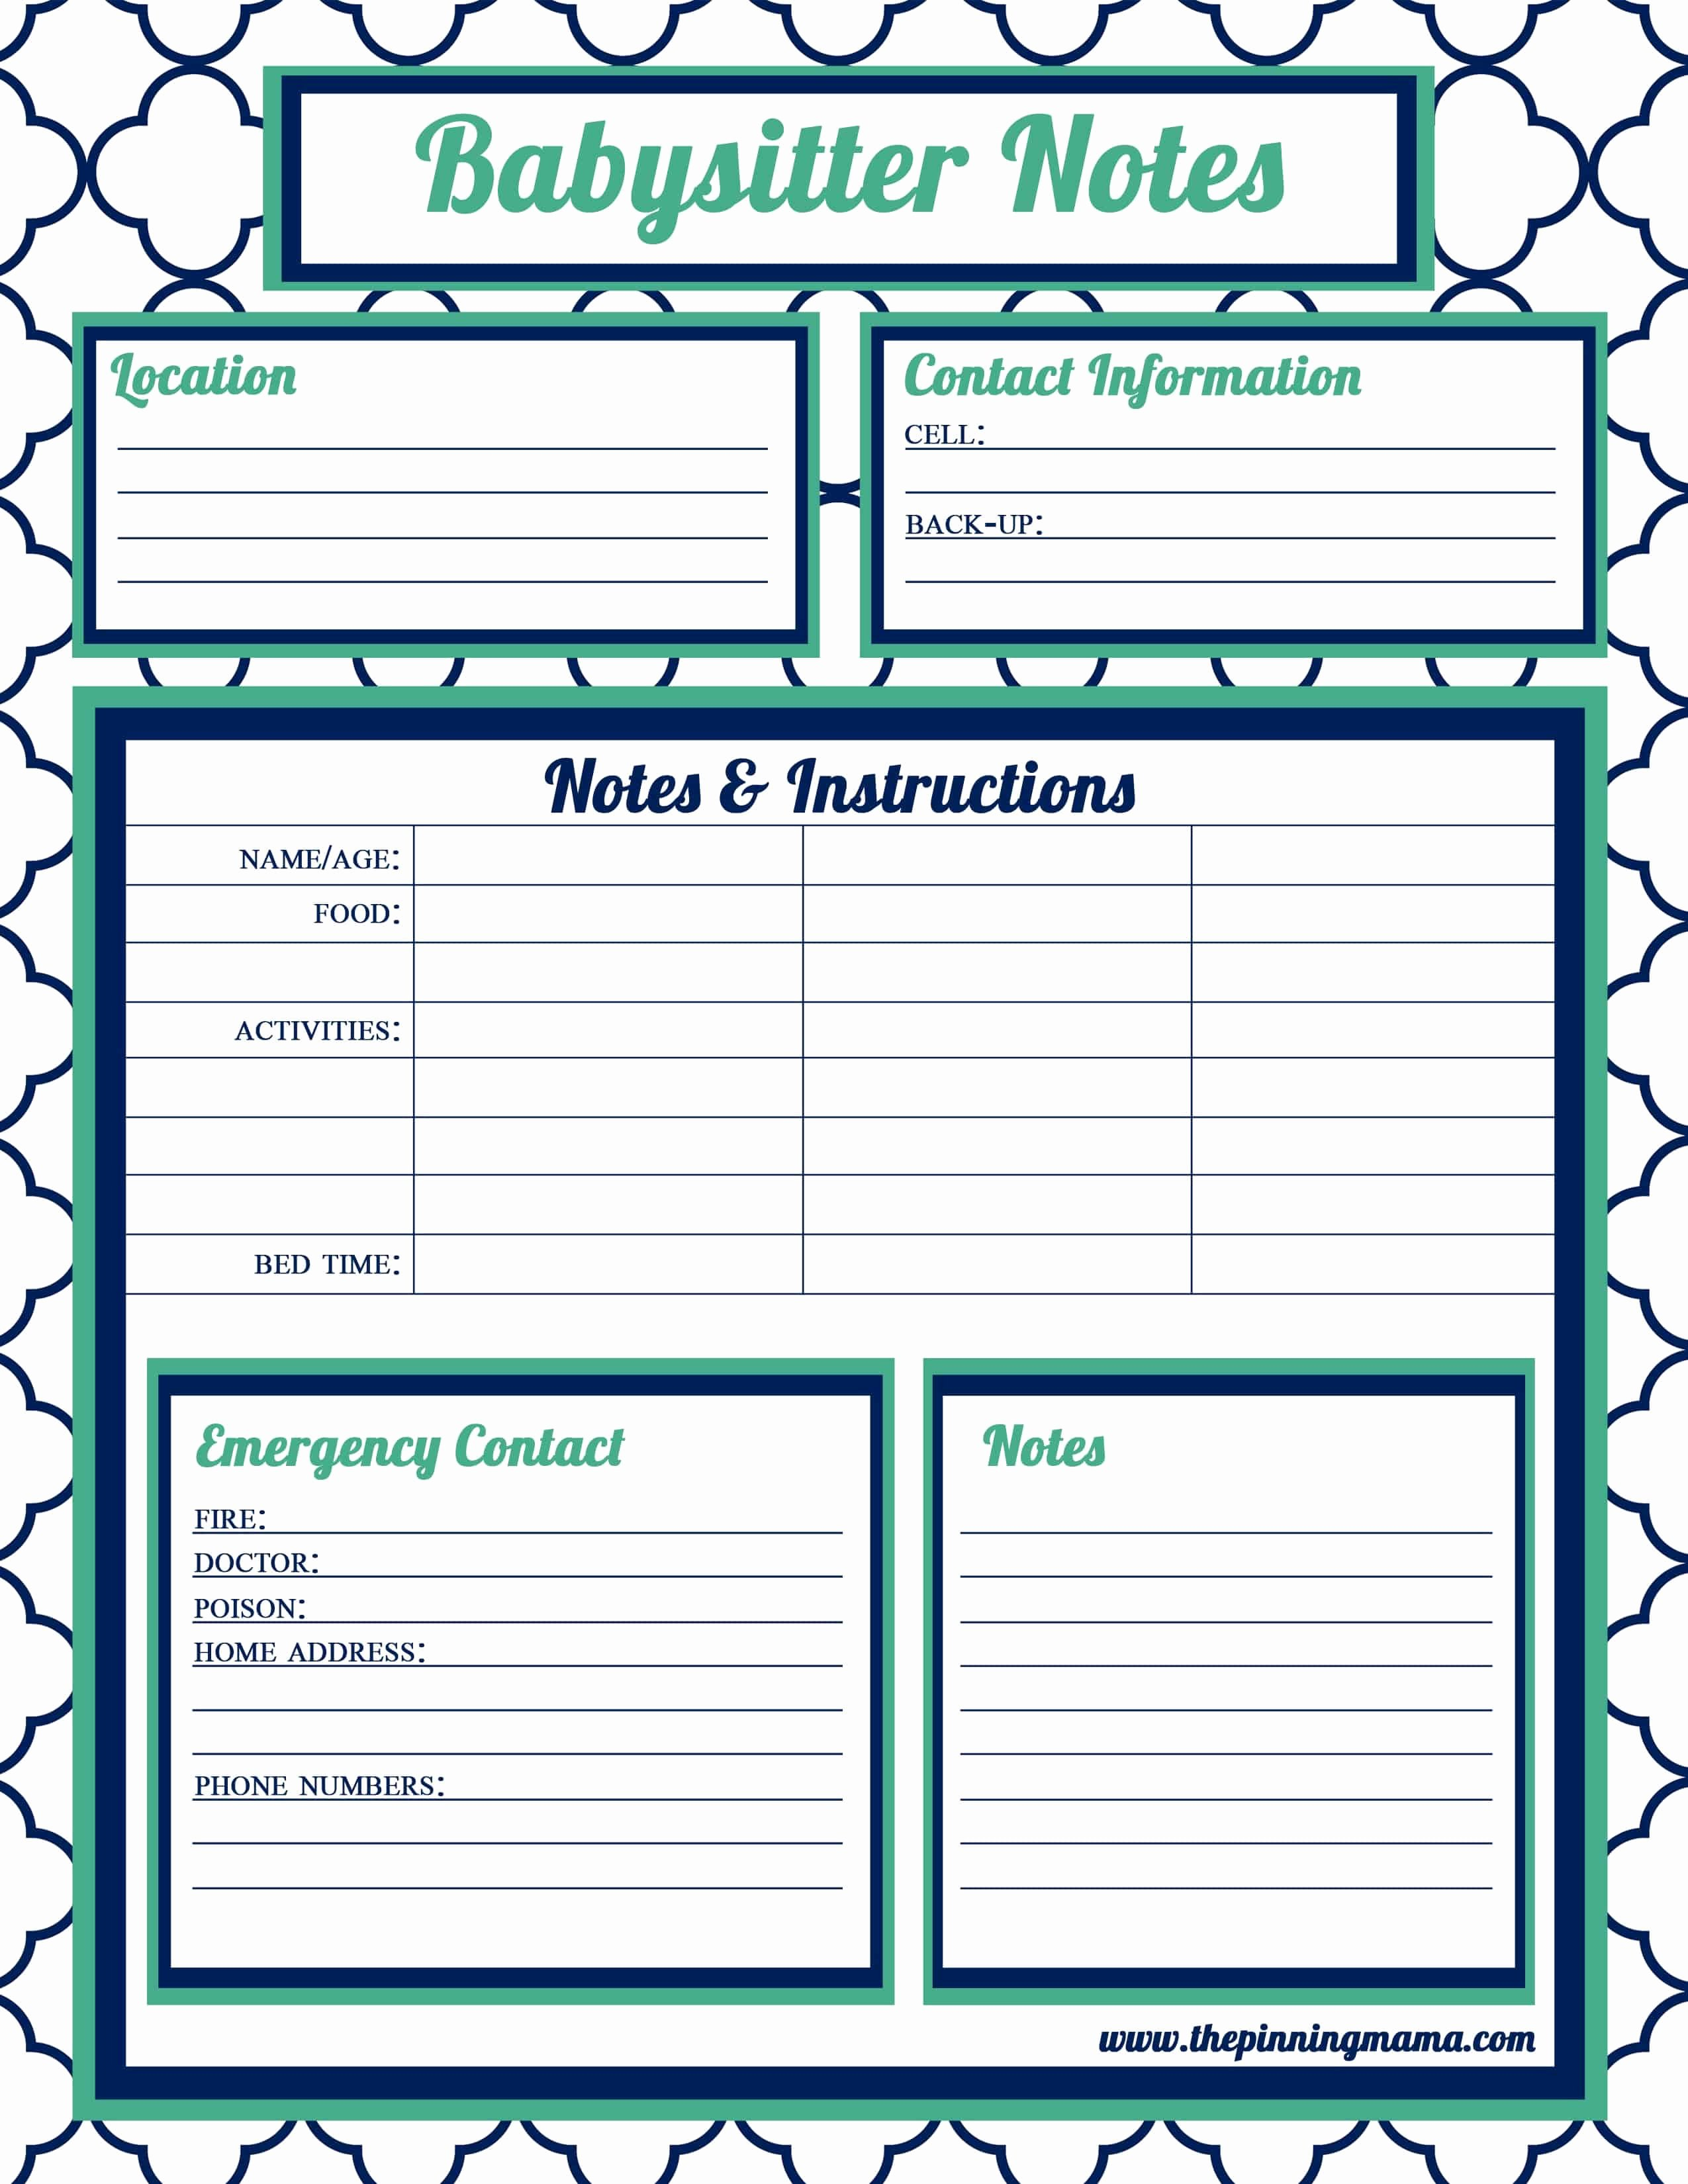 Babysitter Information Sheet Template Best Of House Cleaning Dry Erase House House House Cleaning Notes